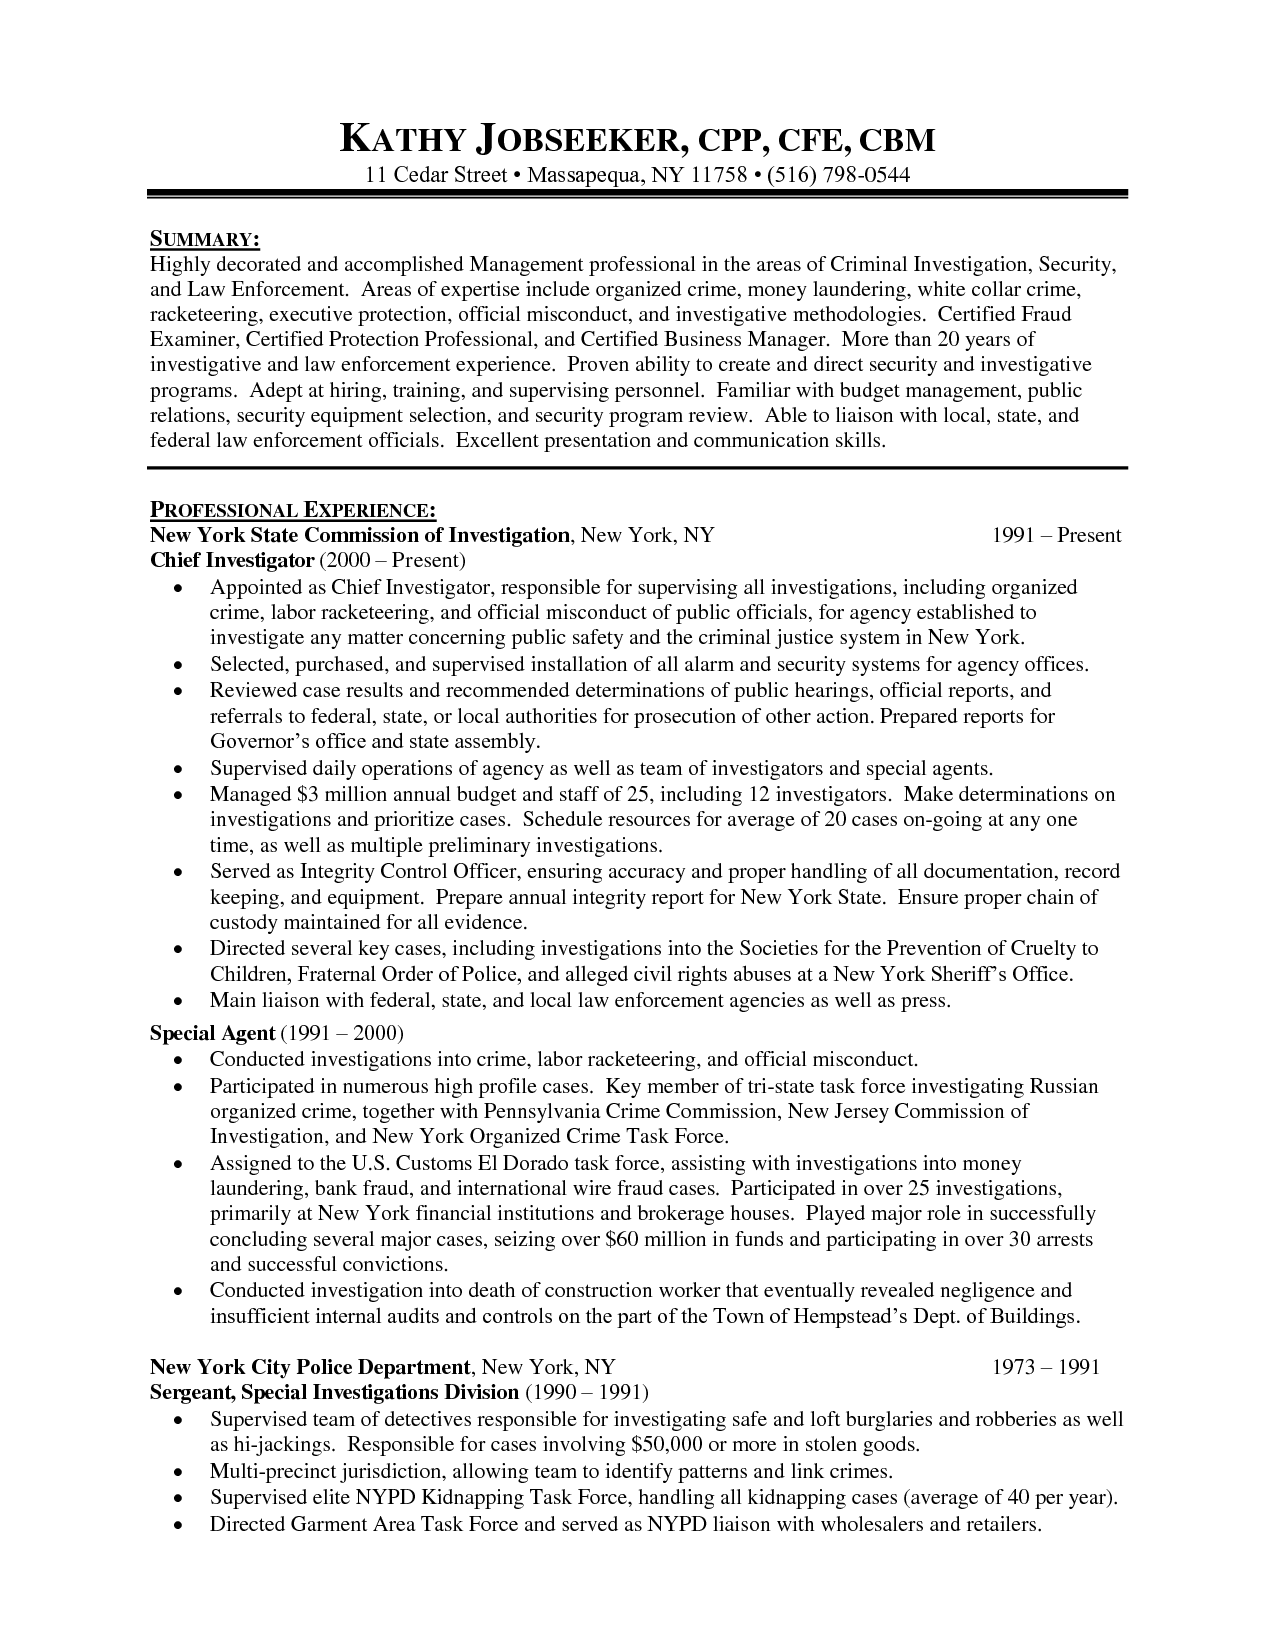 Resume For A Job Pinjobresume On Resume Career Termplate Free  Pinterest